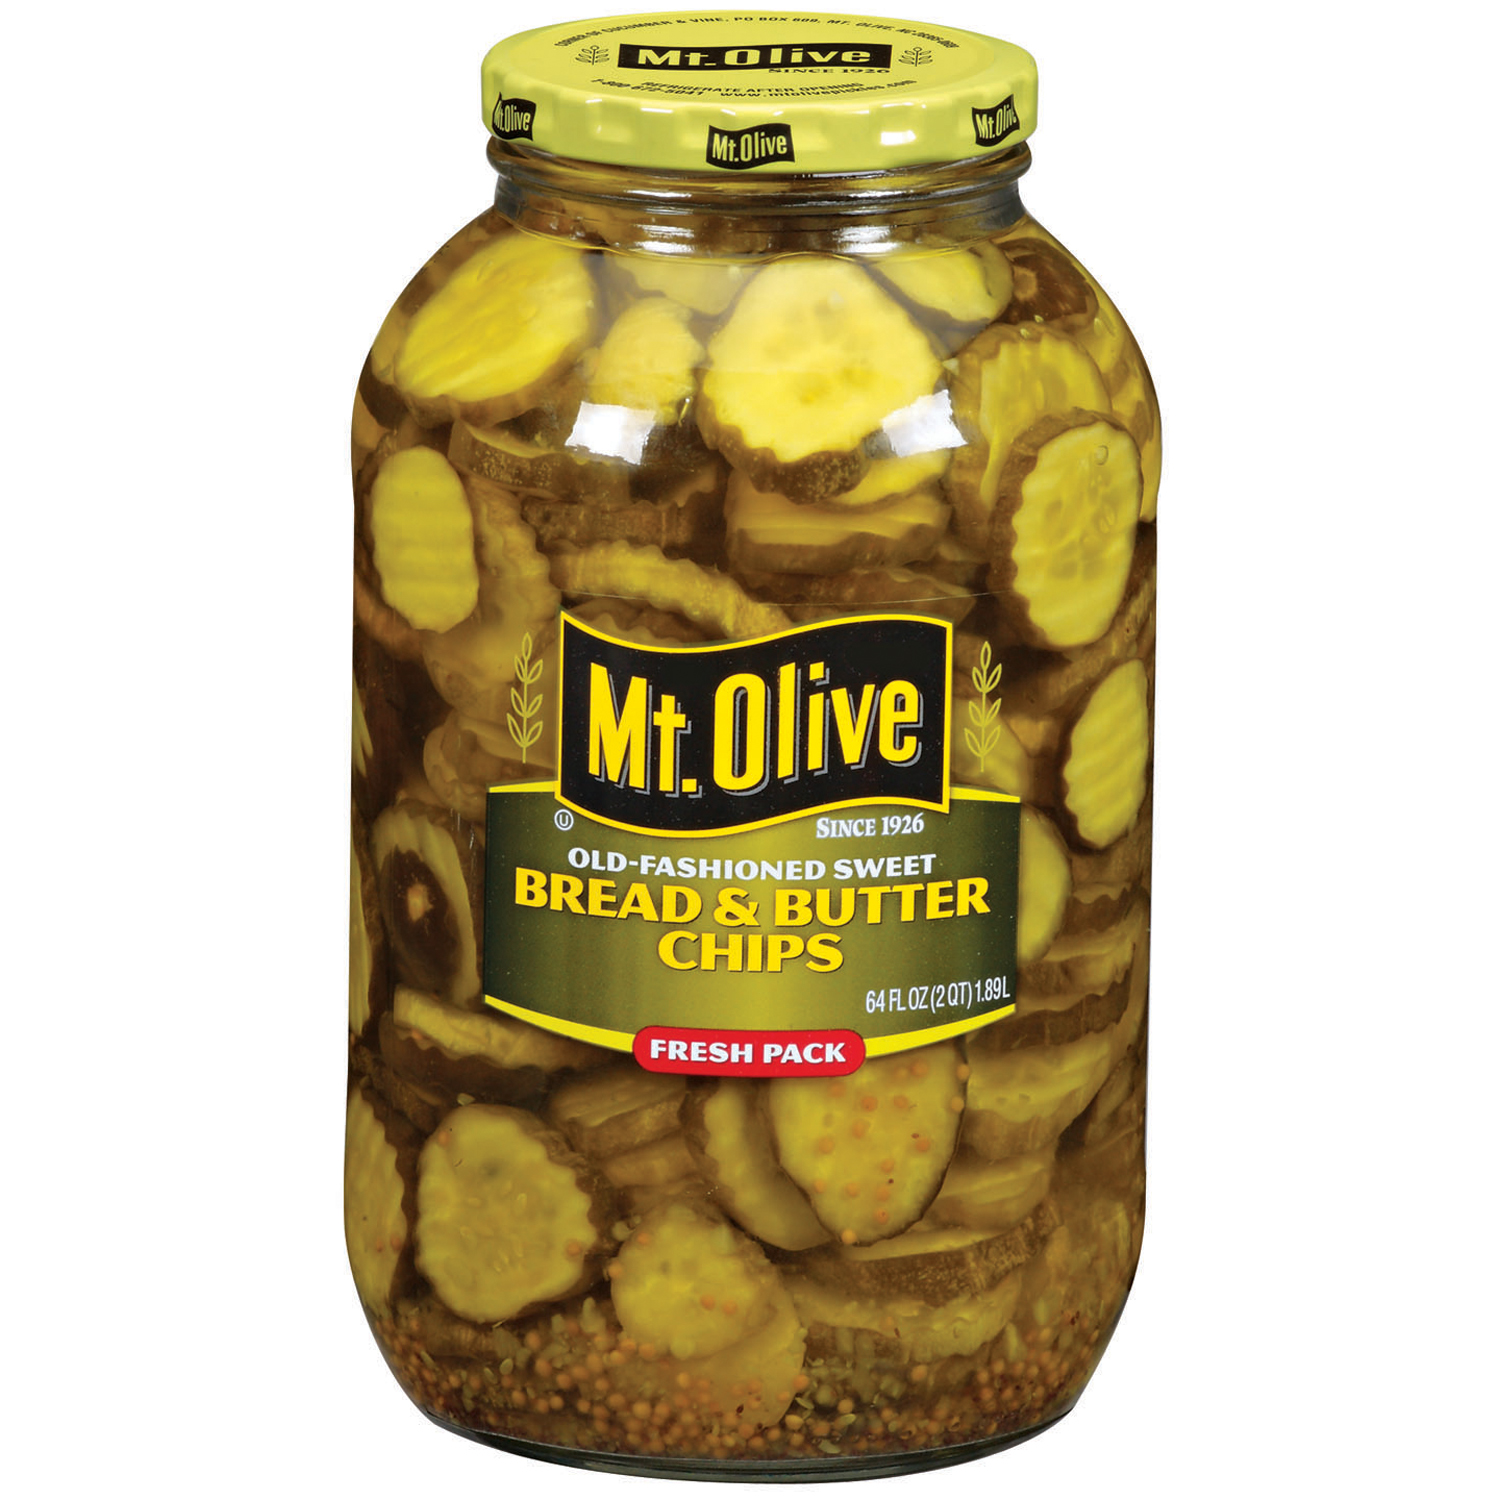 Mt. Olive Bread & Butter Chips Old Fashioned Sweet Fresh Pack Pickles 64 fl. oz. Jar by Mt. Olive Pickle Company, Inc.